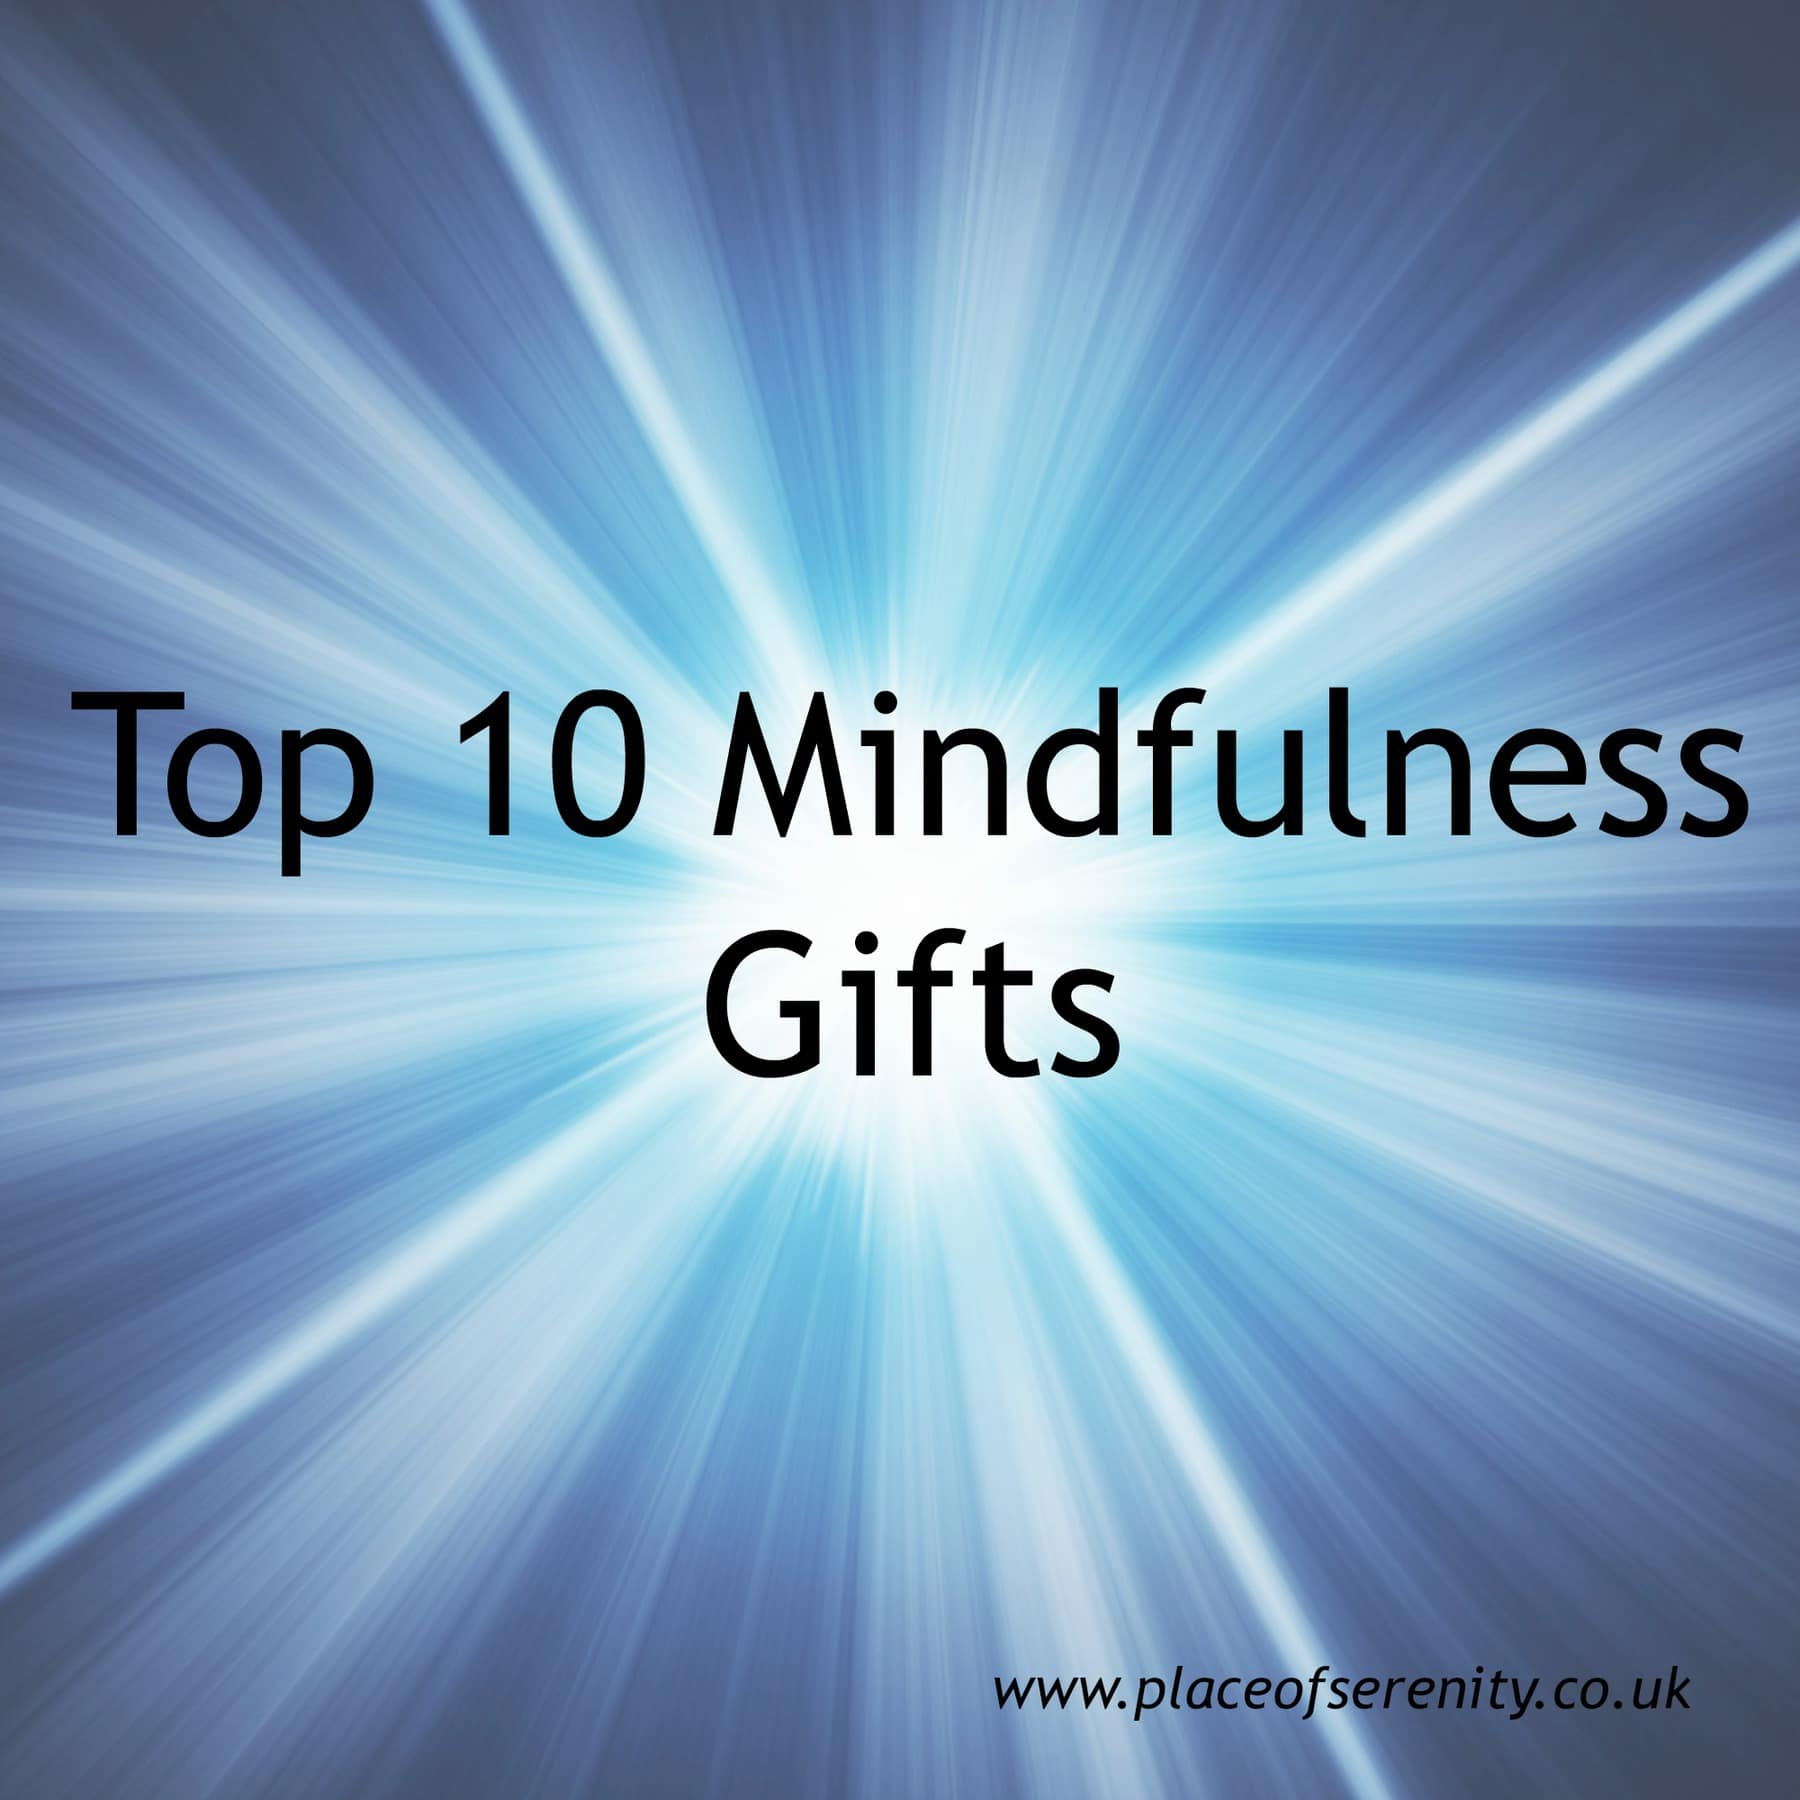 Where Is The Co U R: Top 10 Mindfulness Gifts